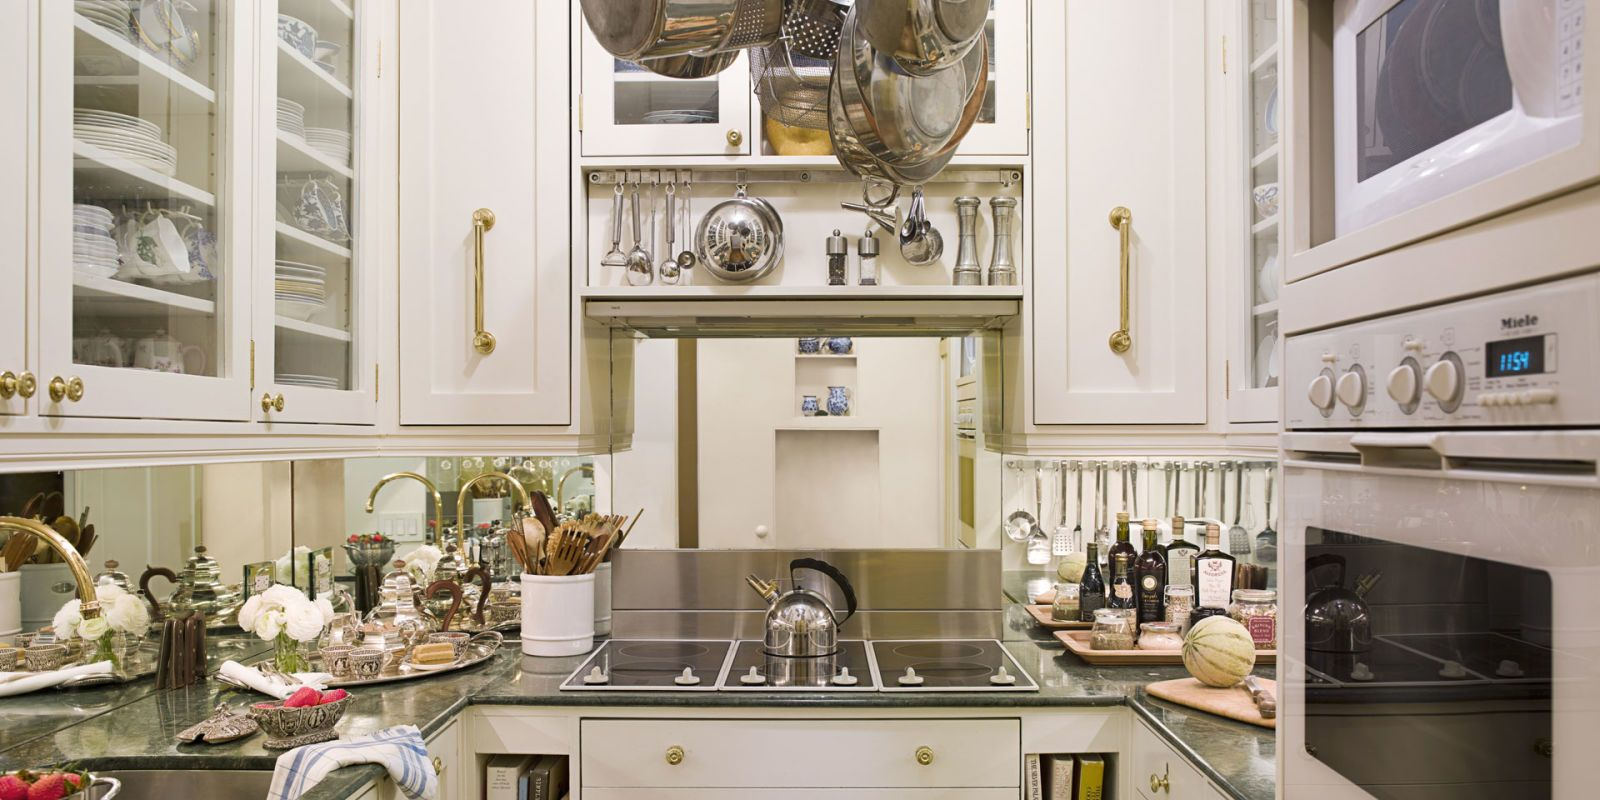 5 Most Popular Pins on Pinterest This Week: The Smallest Kitchen Ever, a Glamorous Dressing Room, and More